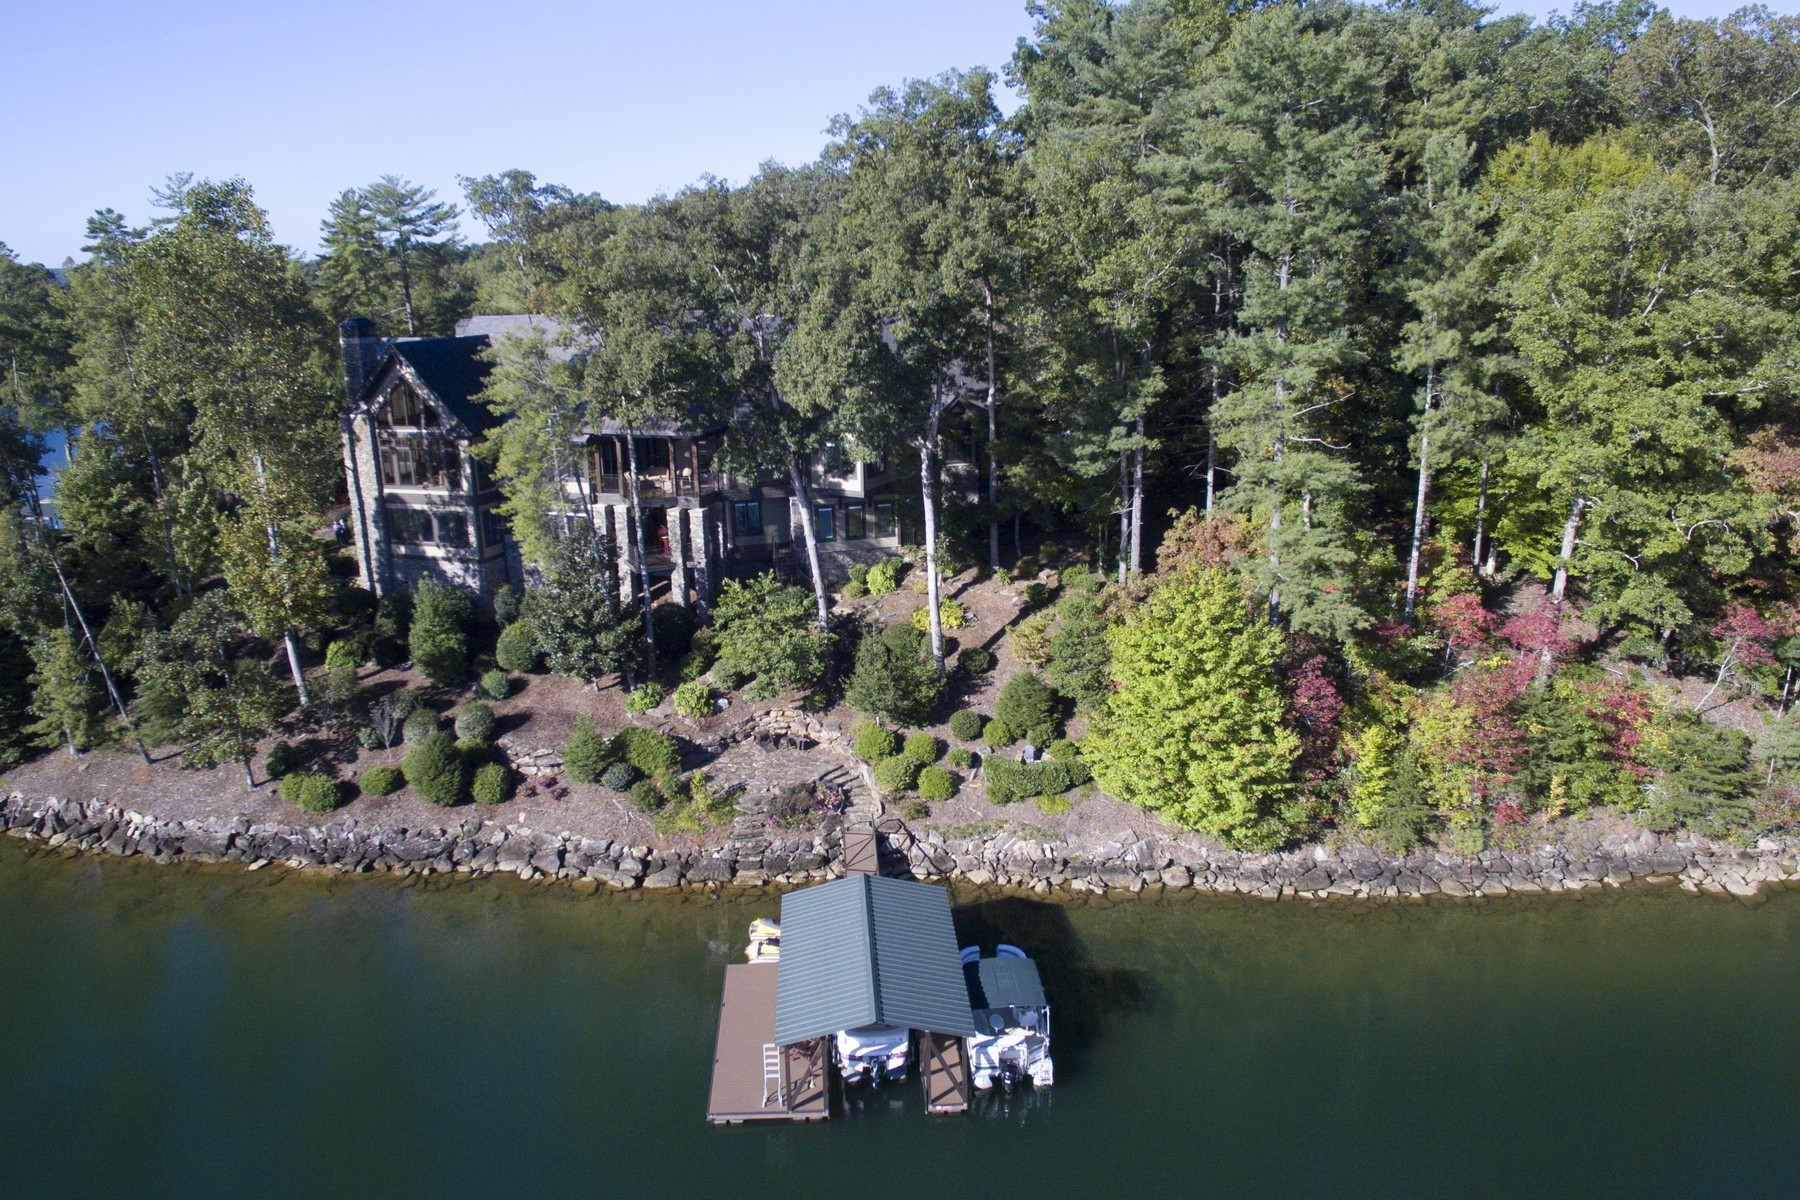 Single Family Home for Sale at Outstanding Lakeside Retreat With Breathtaking Views From a Superb Peninsula 107 Nine Bark Way The Cliffs At Keowee Vineyards, Sunset, South Carolina, 29685 United States